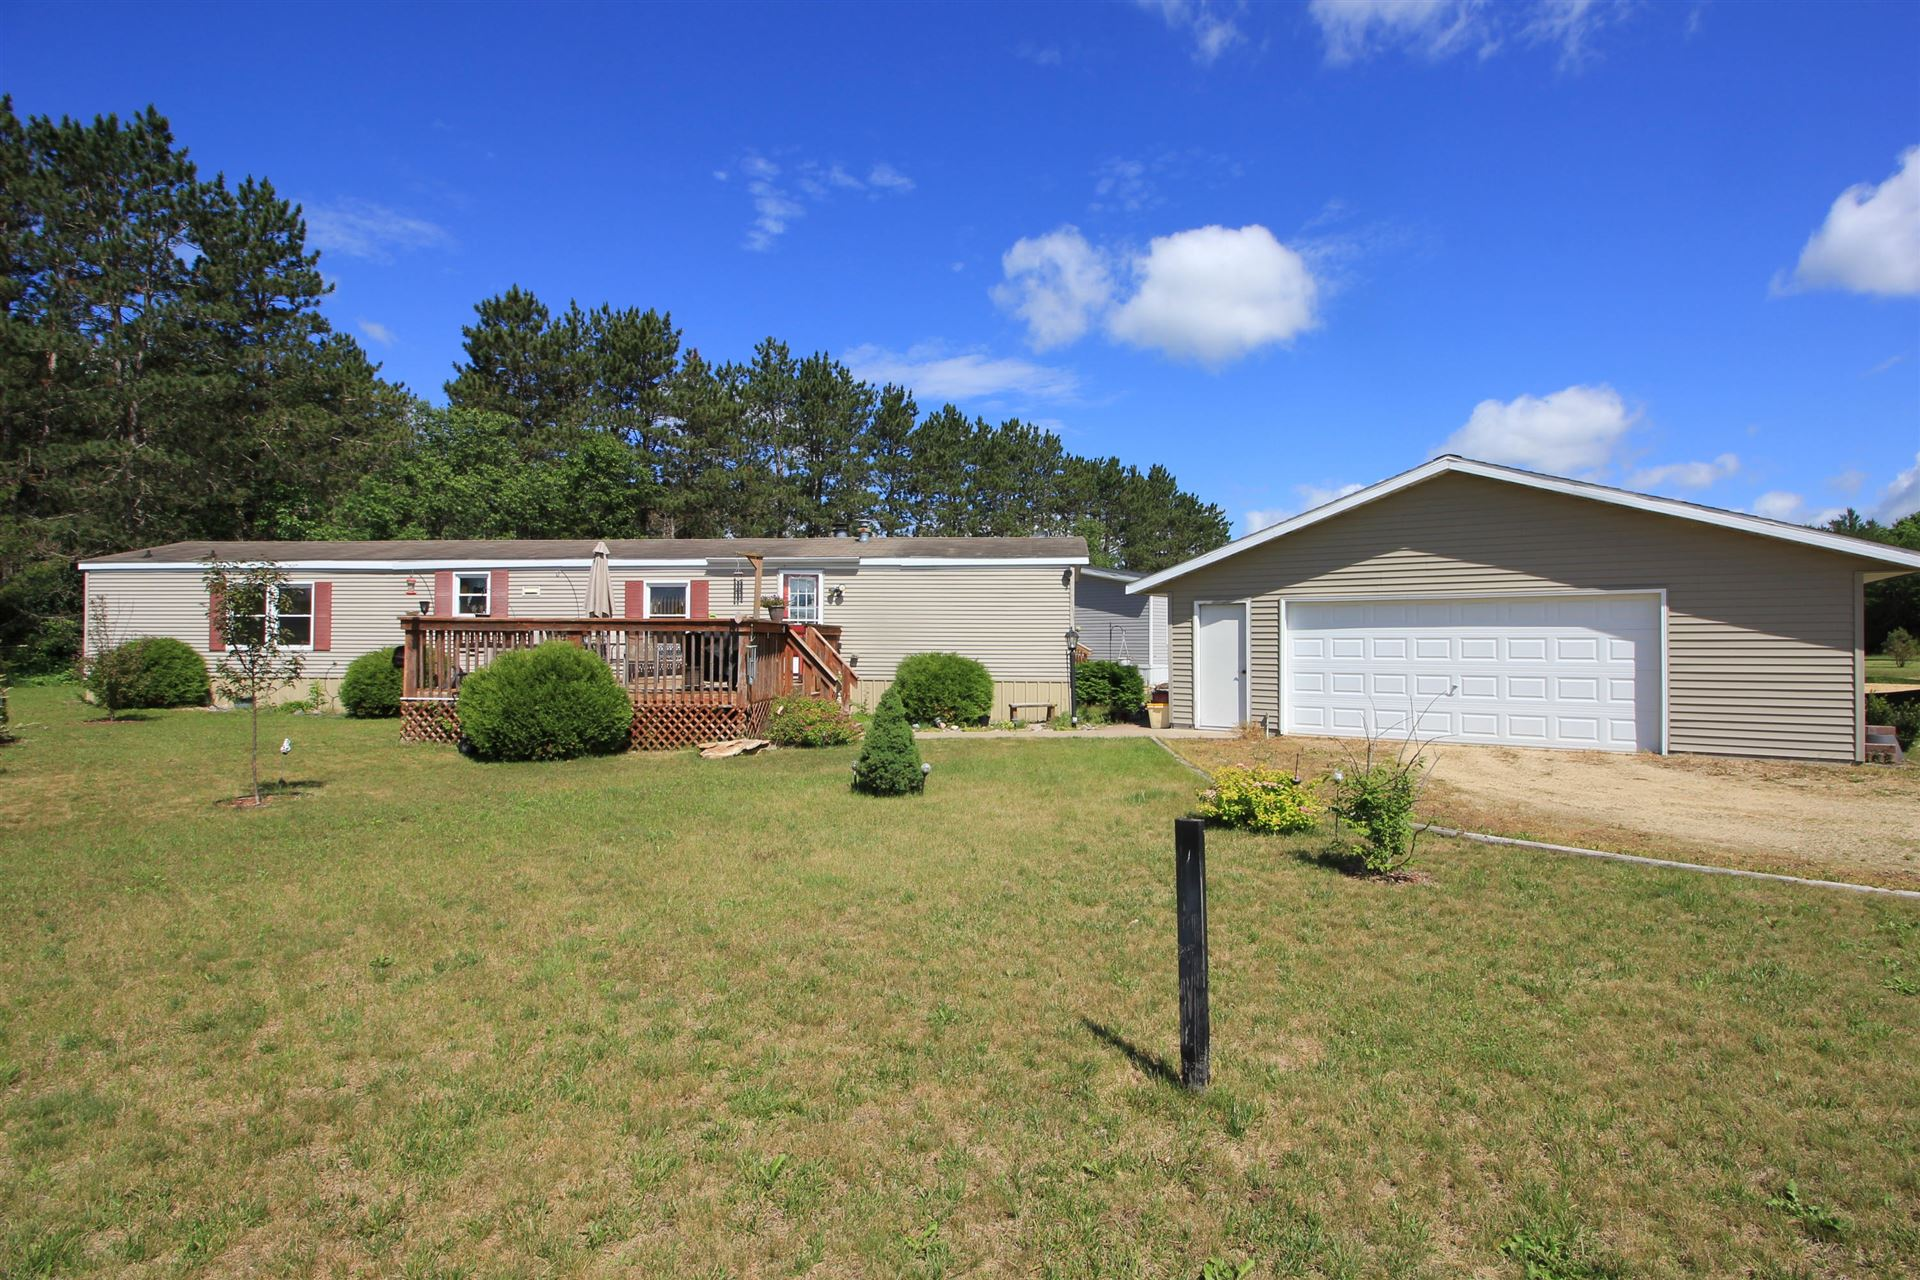 15528 Cth A LOT 18, Angelo, WI 54656 - MLS#: 1695671